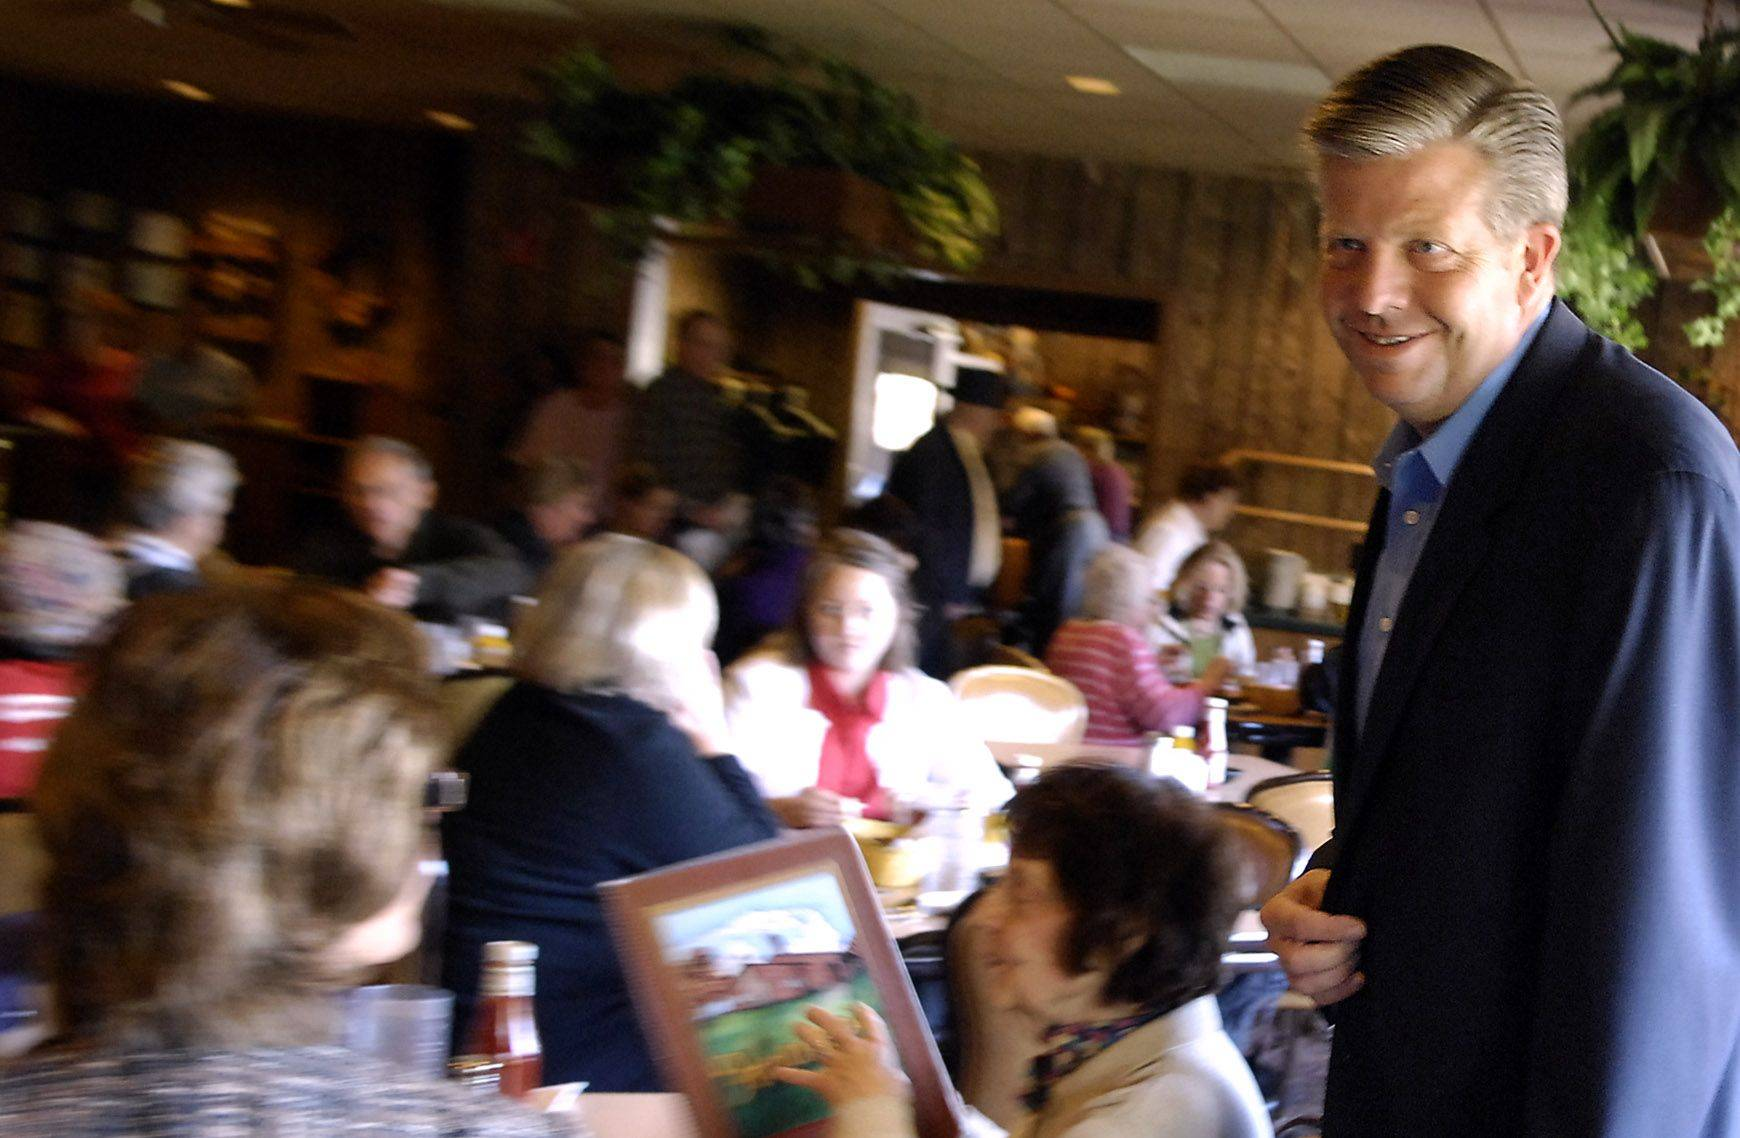 Congressman-elect Randy Hultgren mingles with diners before eating lunch at Harner's Bakery and Restaurant in North Aurora Wednesday.